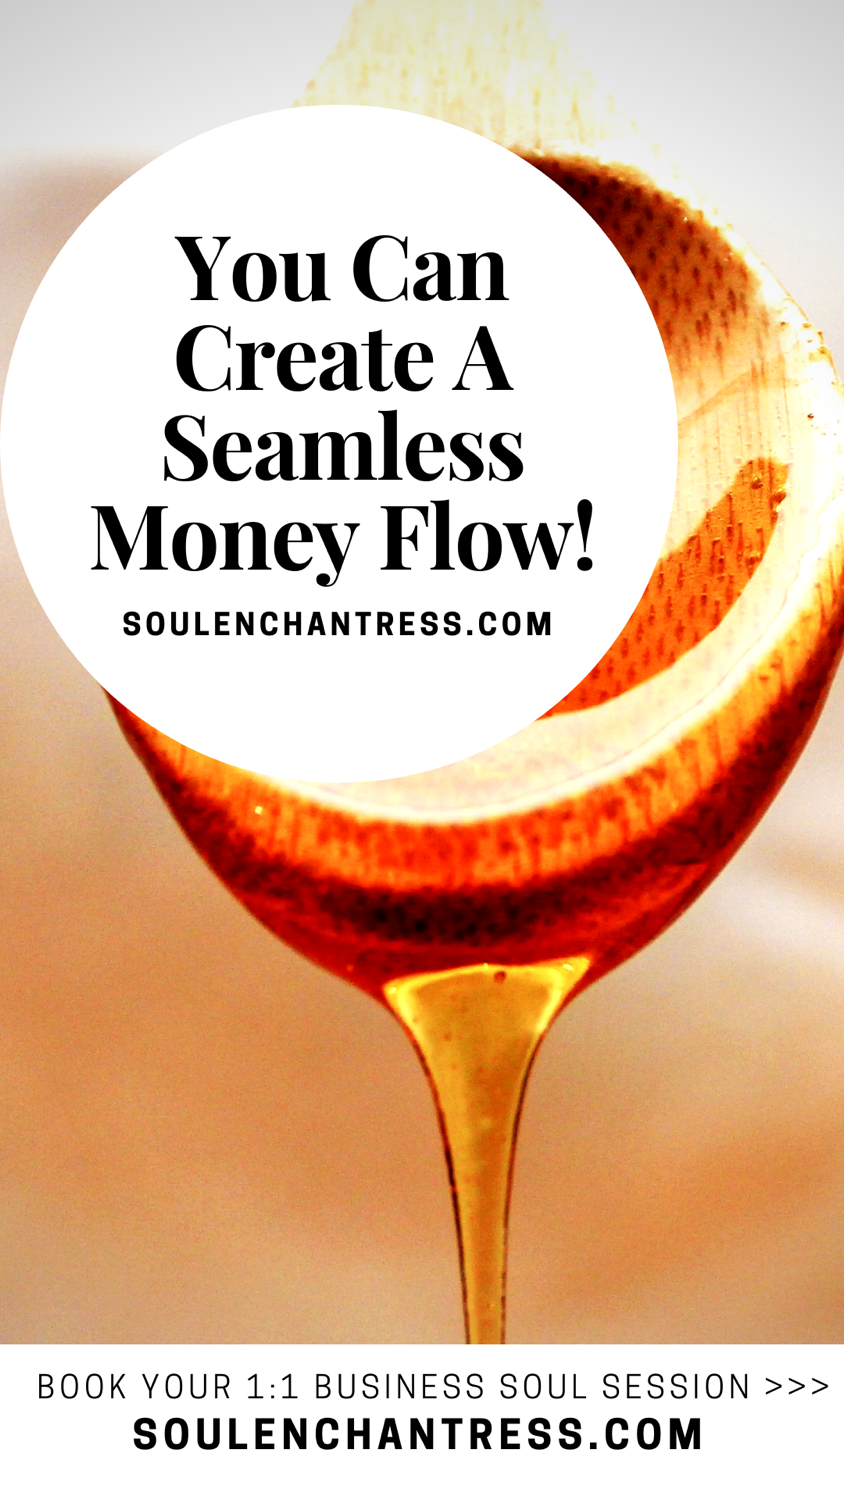 how to attract more money, how to attract more clients, money spells that work, professional witch, soul enchantress